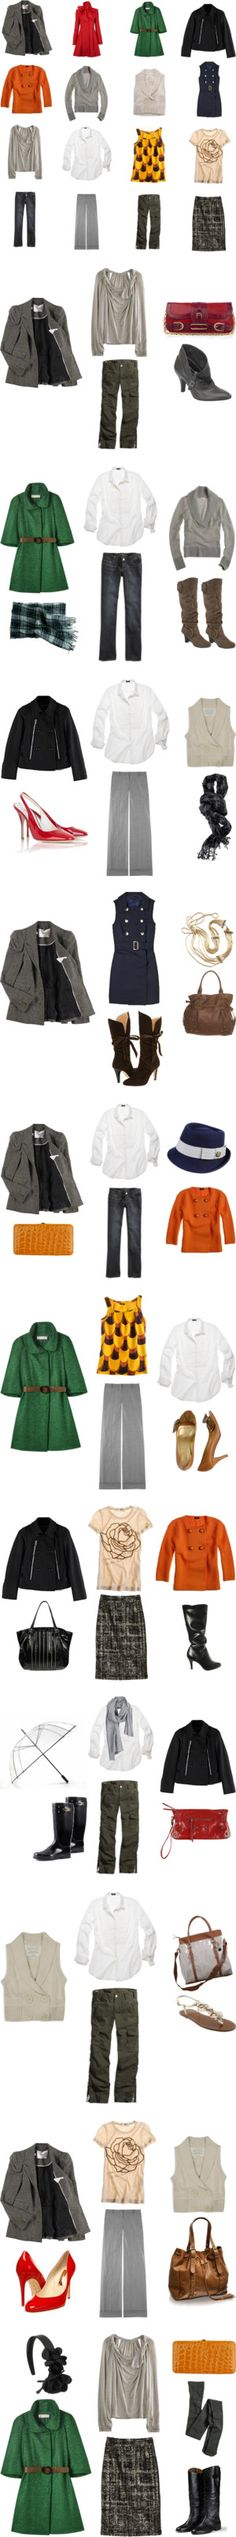 """Fall/Winter Capsule Wardrobe - 2009"" by omiru ❤ liked on Polyvore"